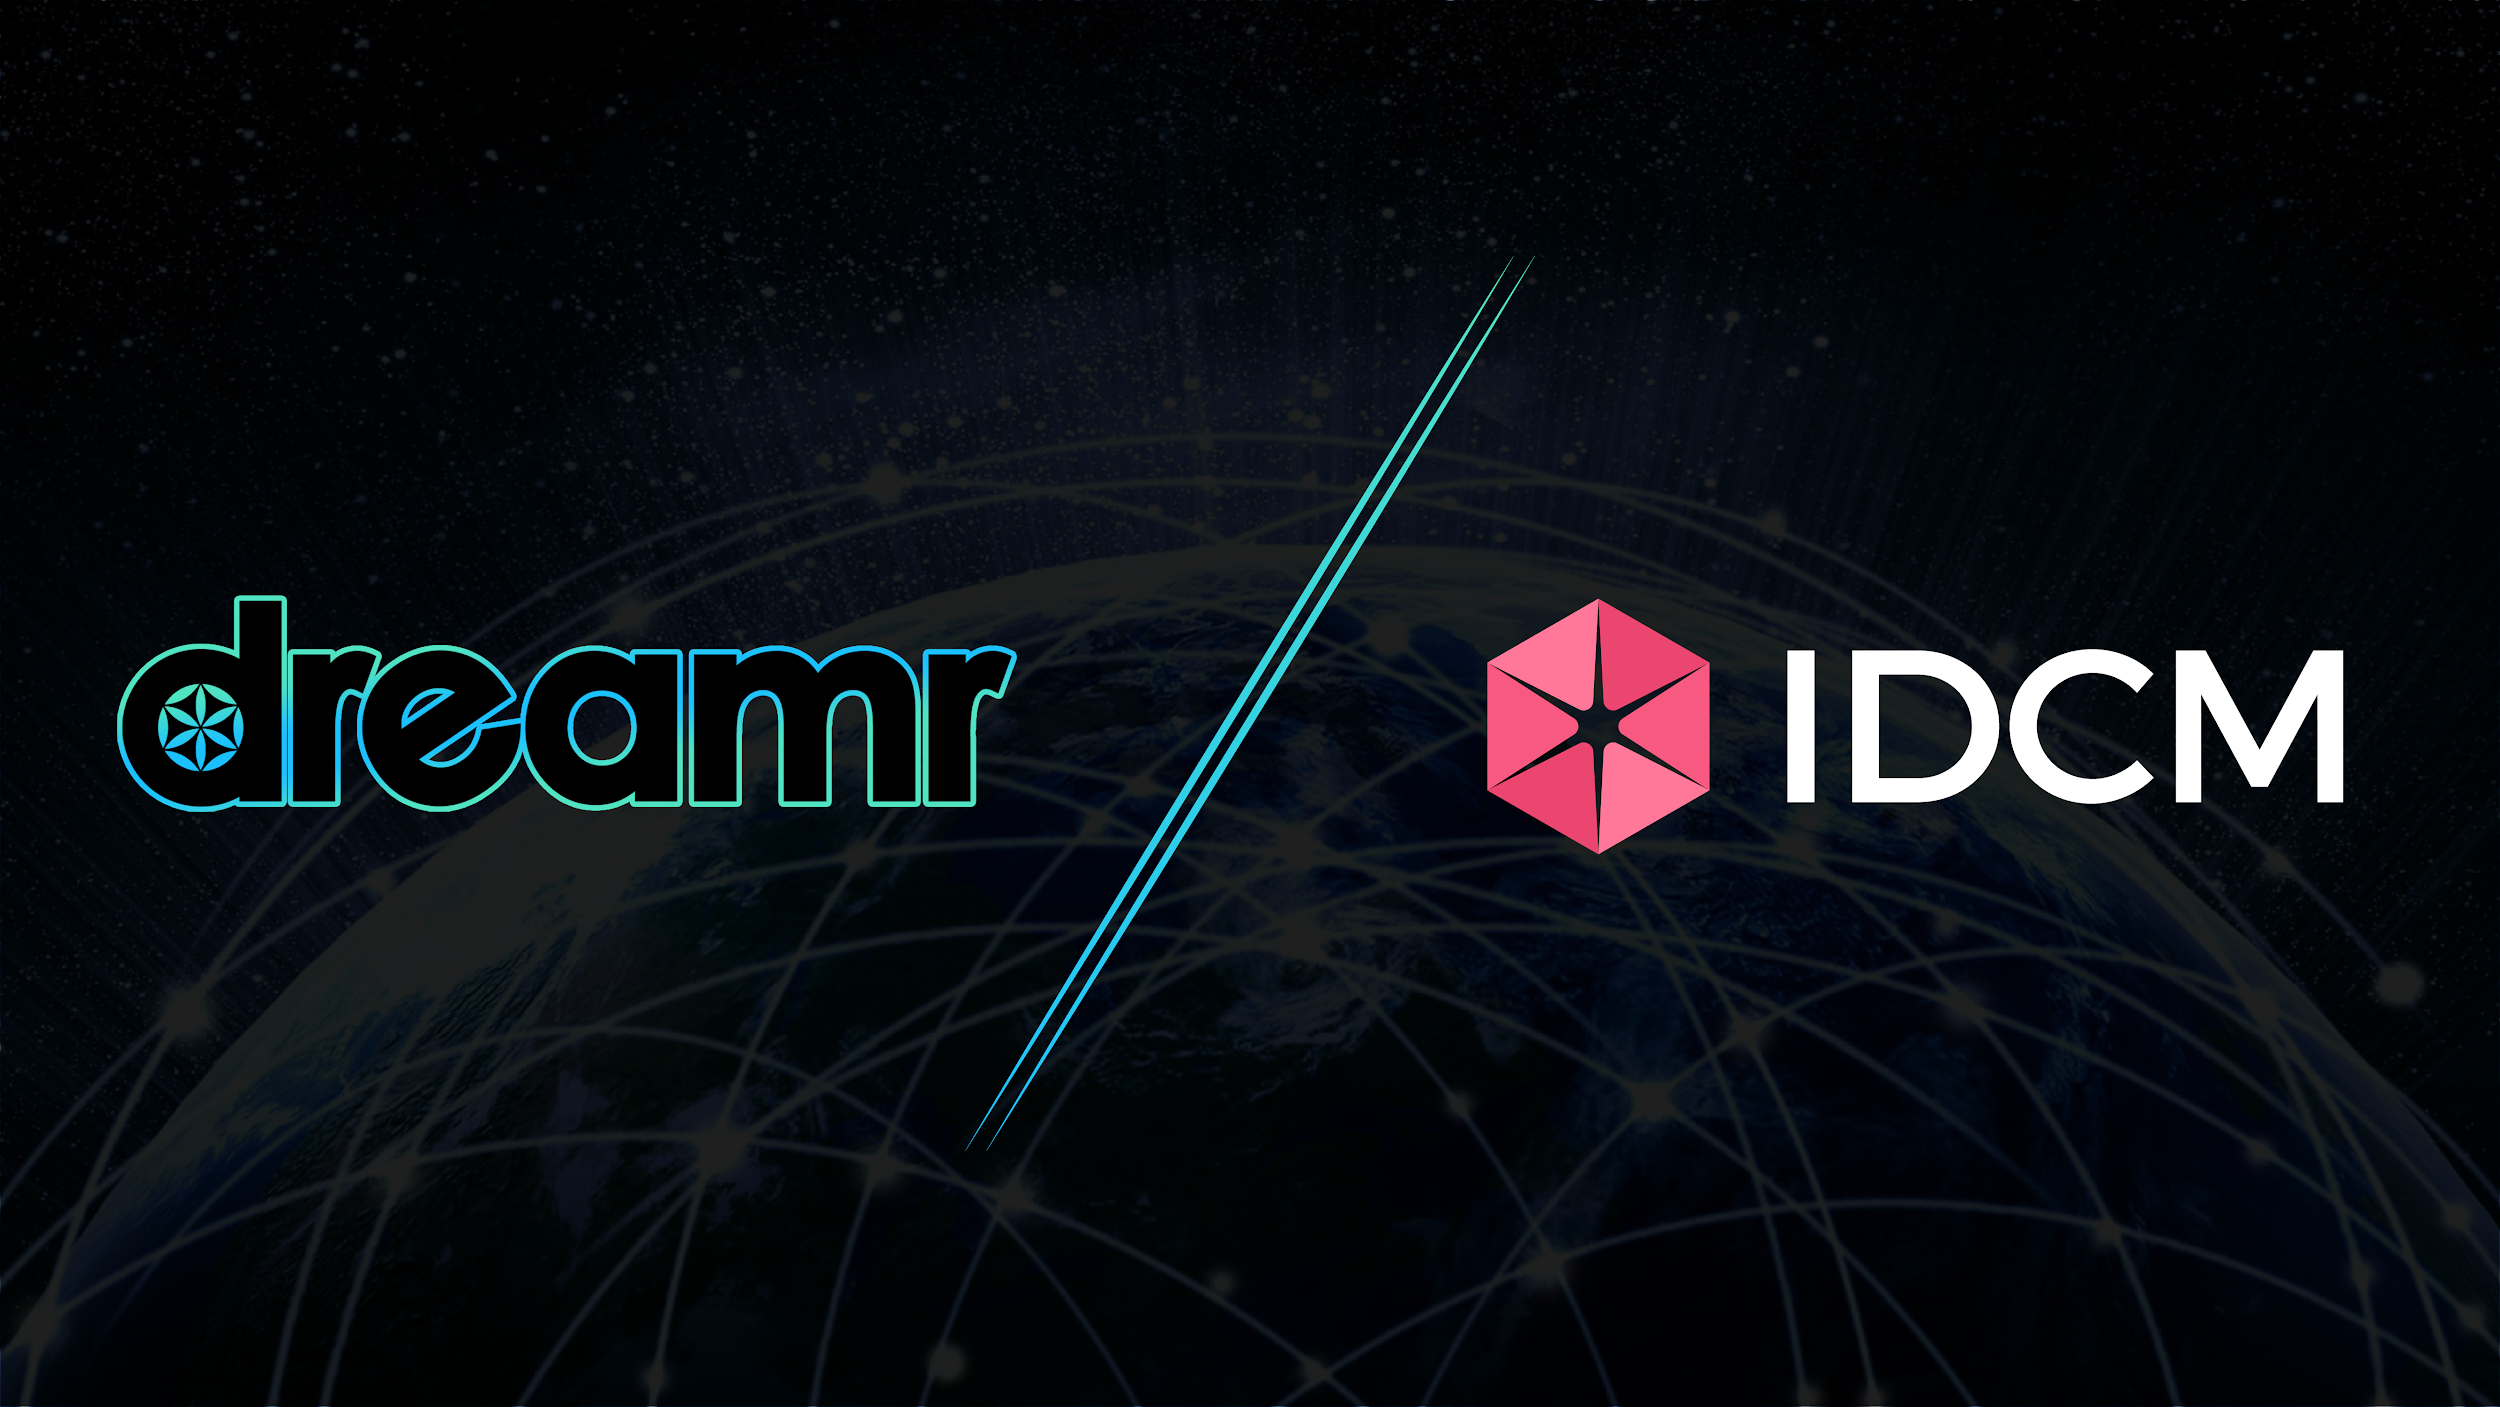 Dreamr Announces Security Token Exchange Offering in partnership with IDCM